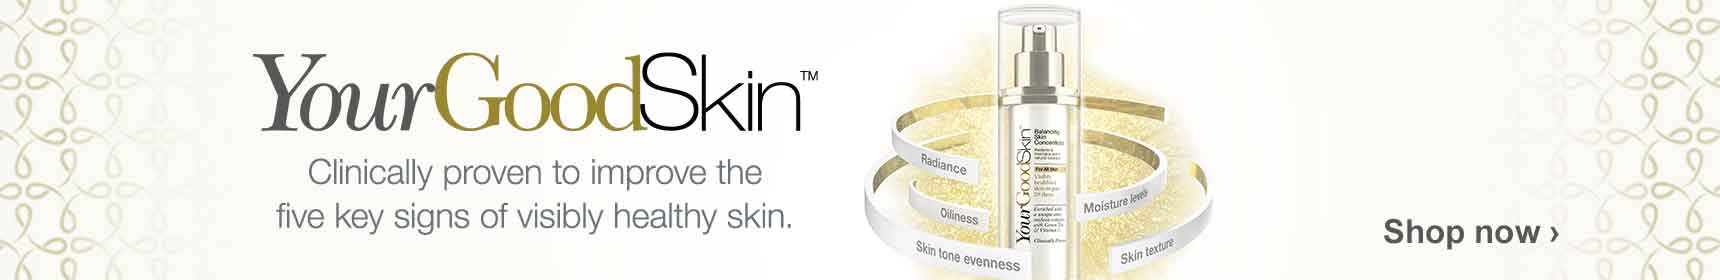 Your Good Skin (TM) Clinically proven to improve the five key signs of visibly healthy skin. Shop now.